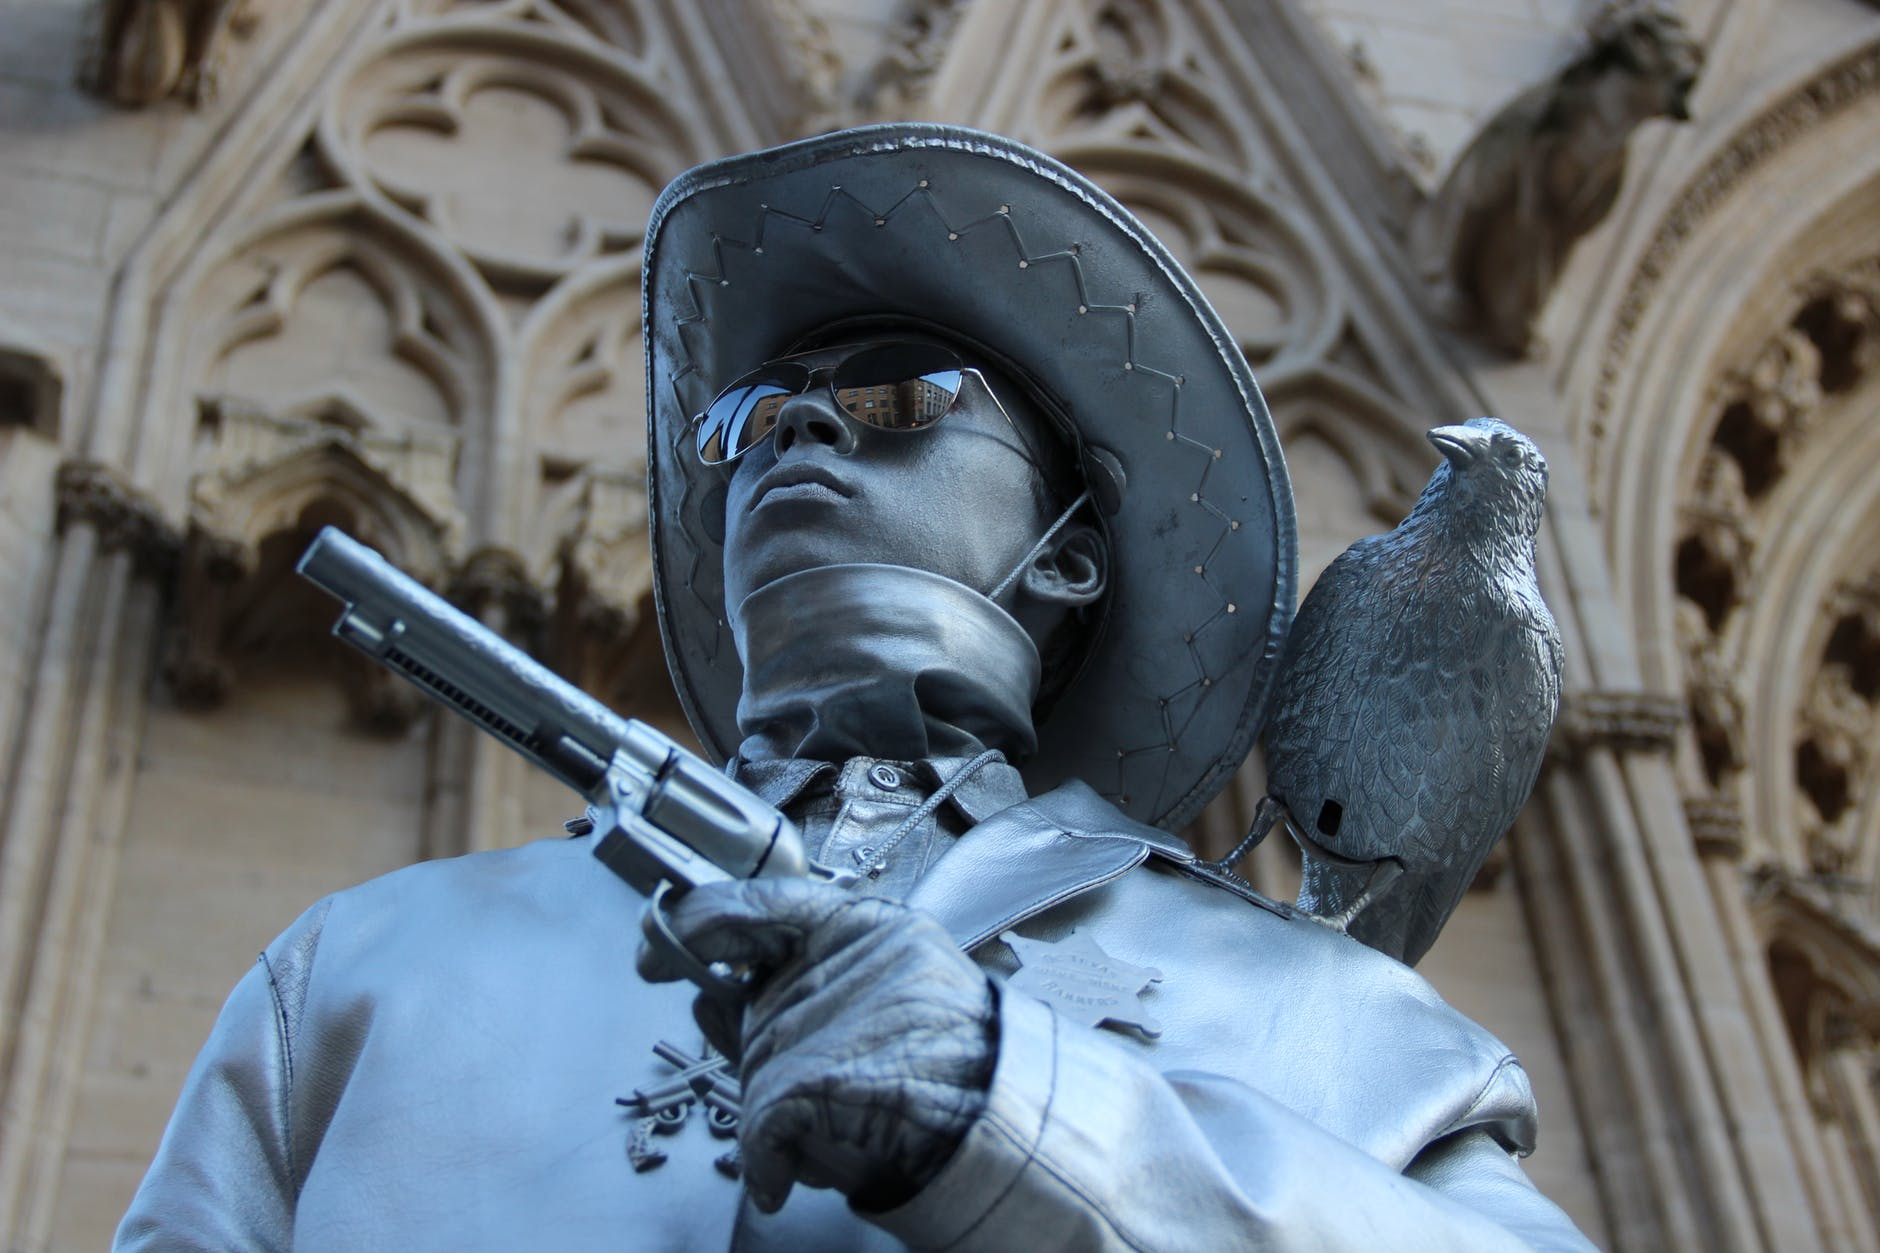 selective focus photography of cowboy holding revolver pistol statue